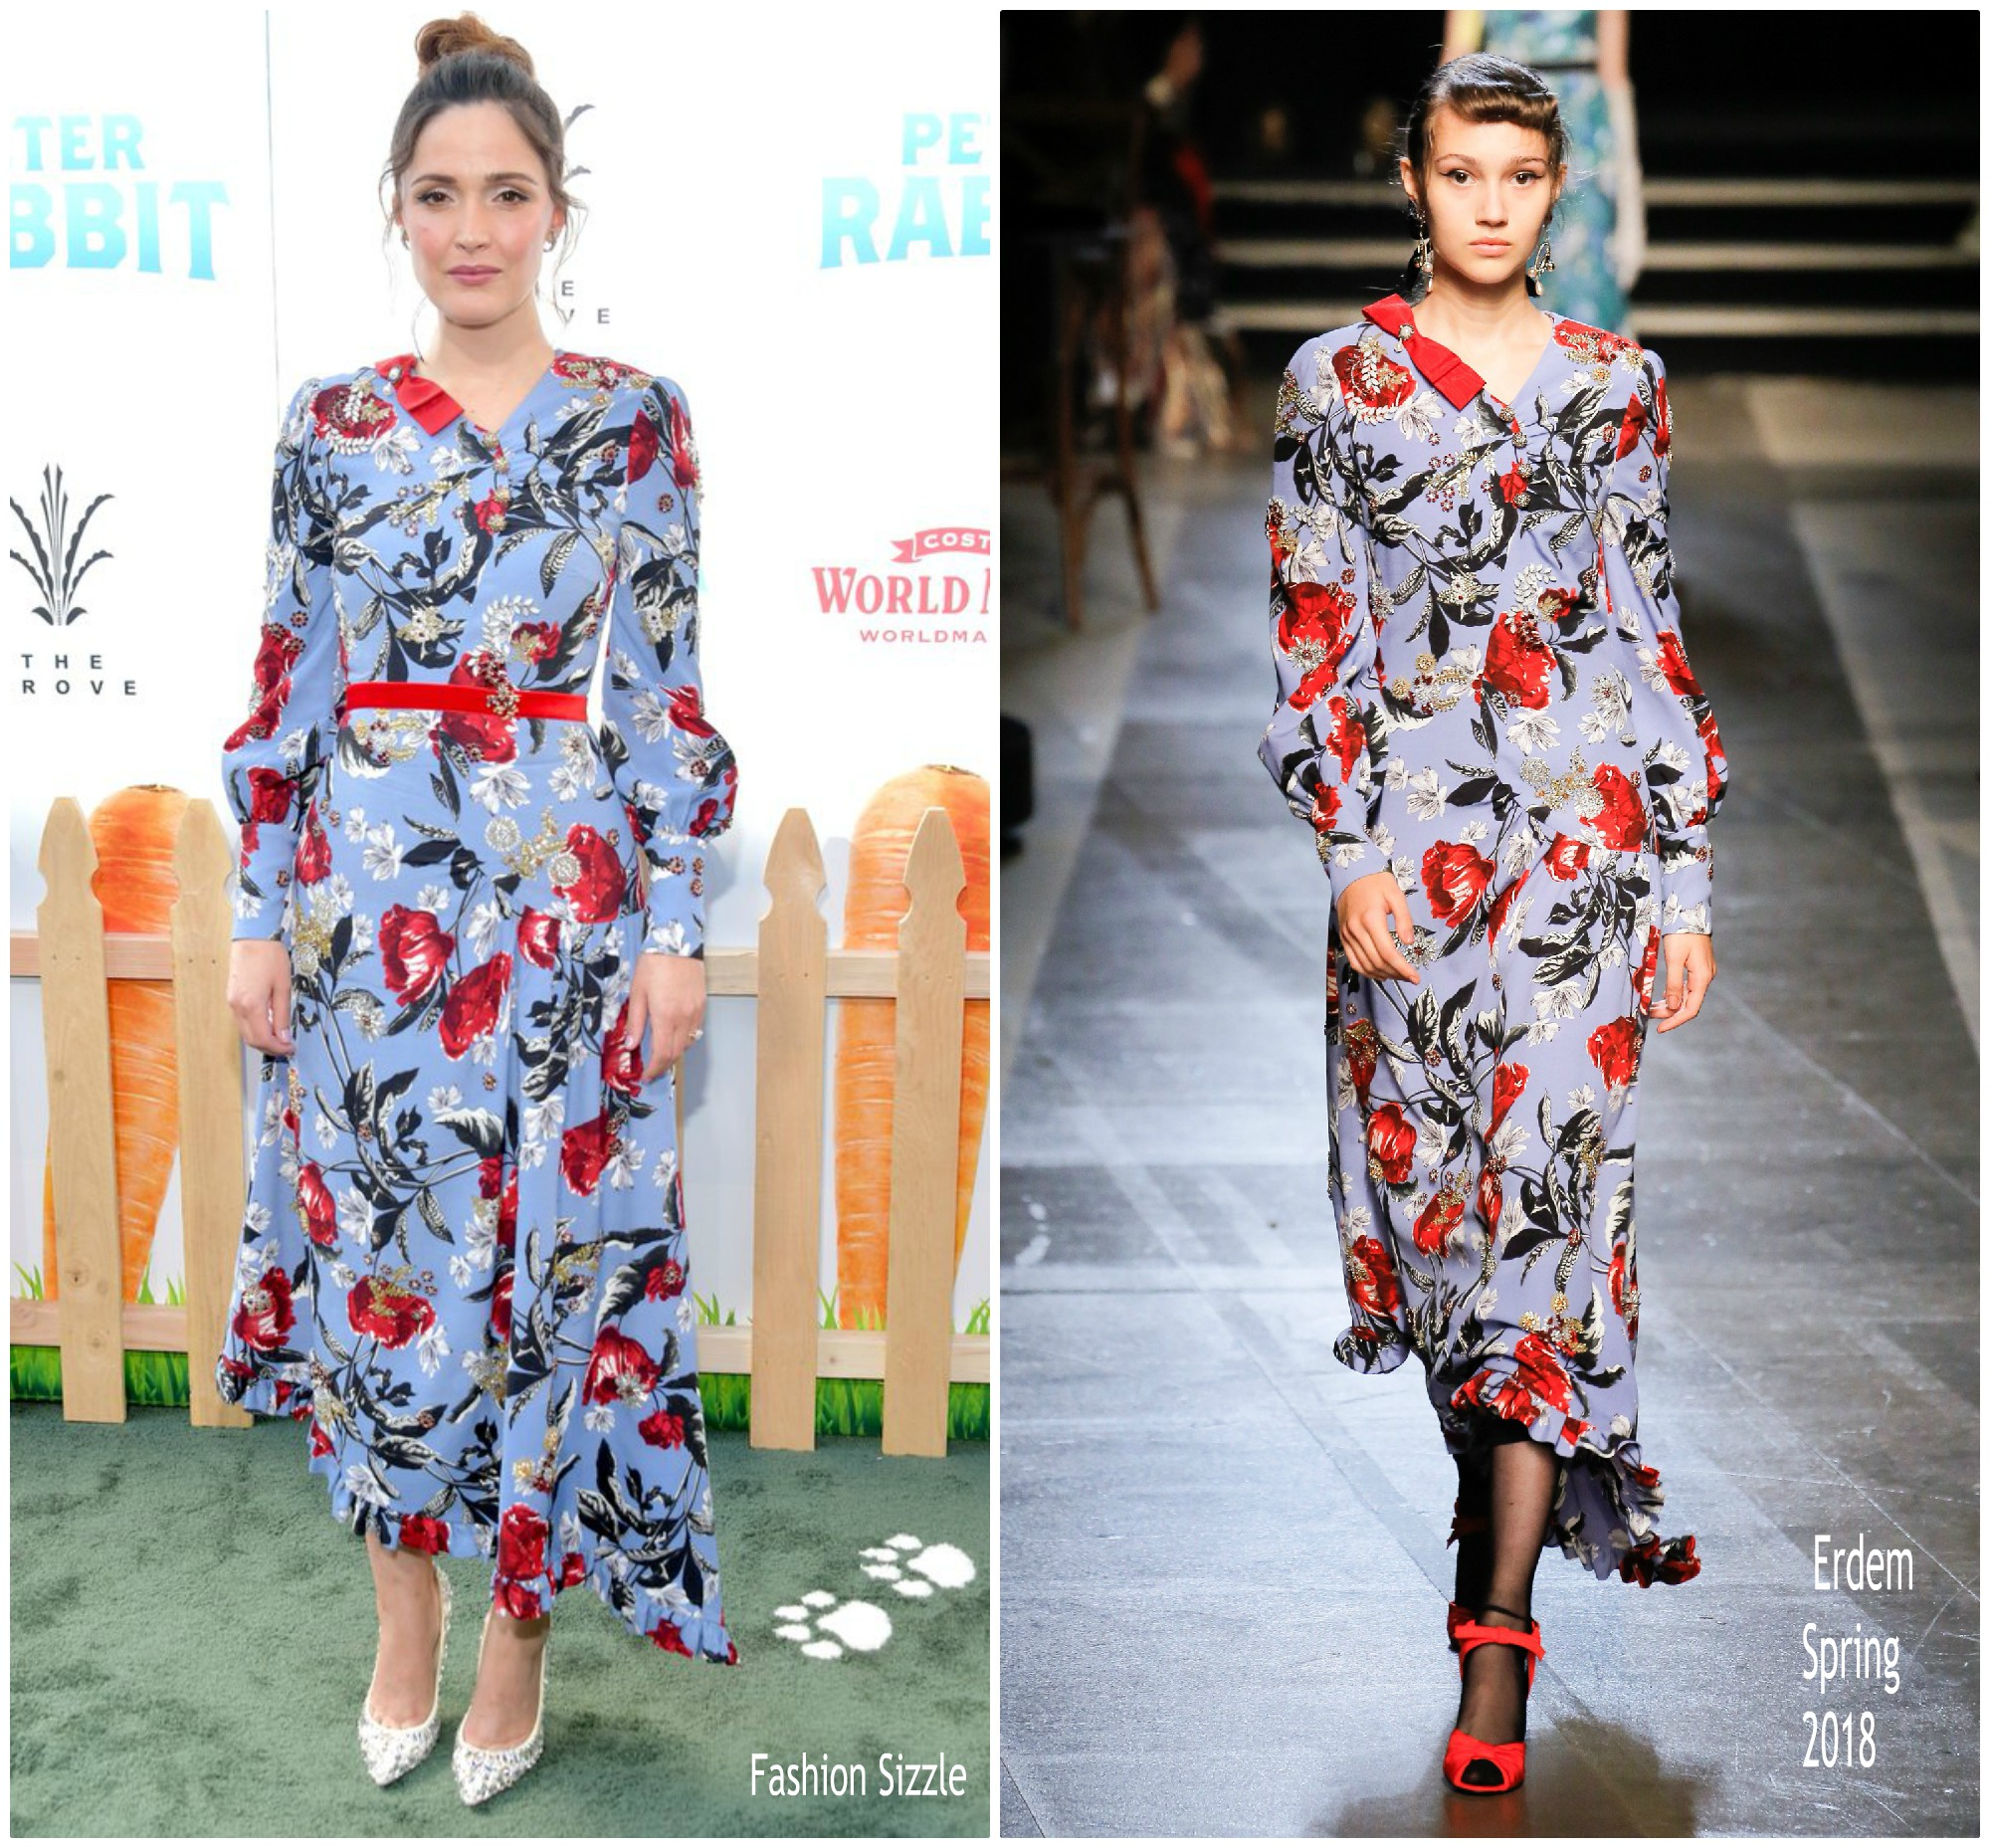 rose-byrne-in-erdem-peter-rabbit-la-premiere